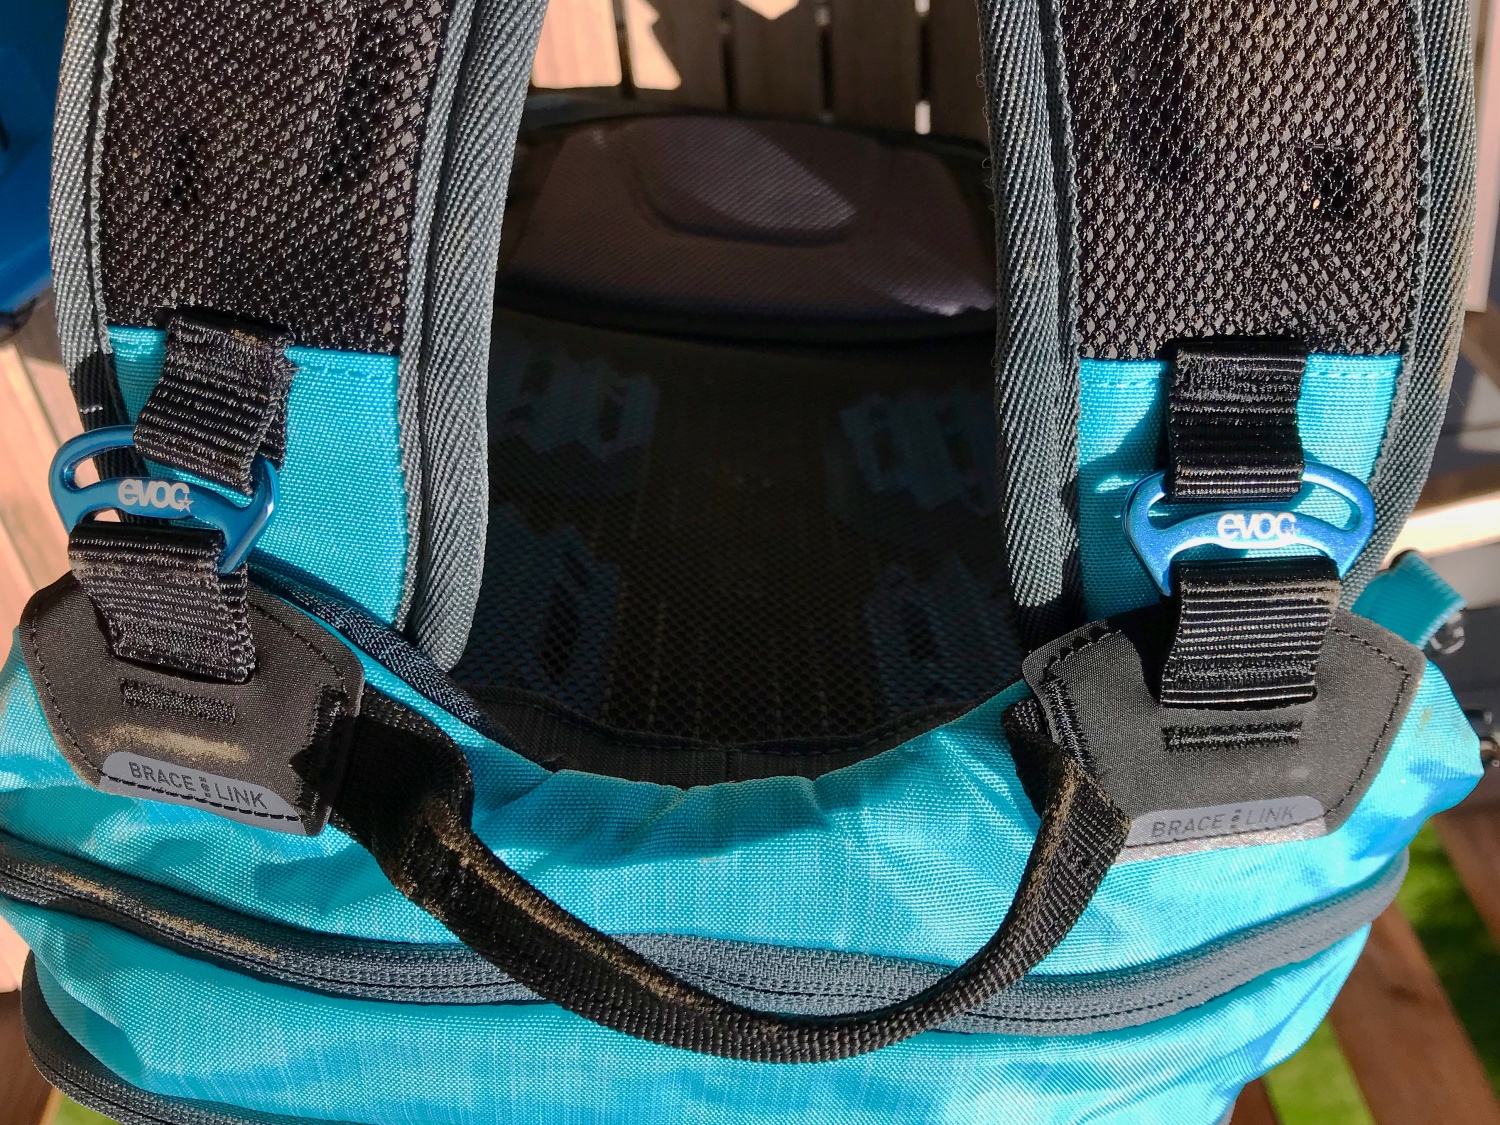 EVOC Explorer Pro 30L Review